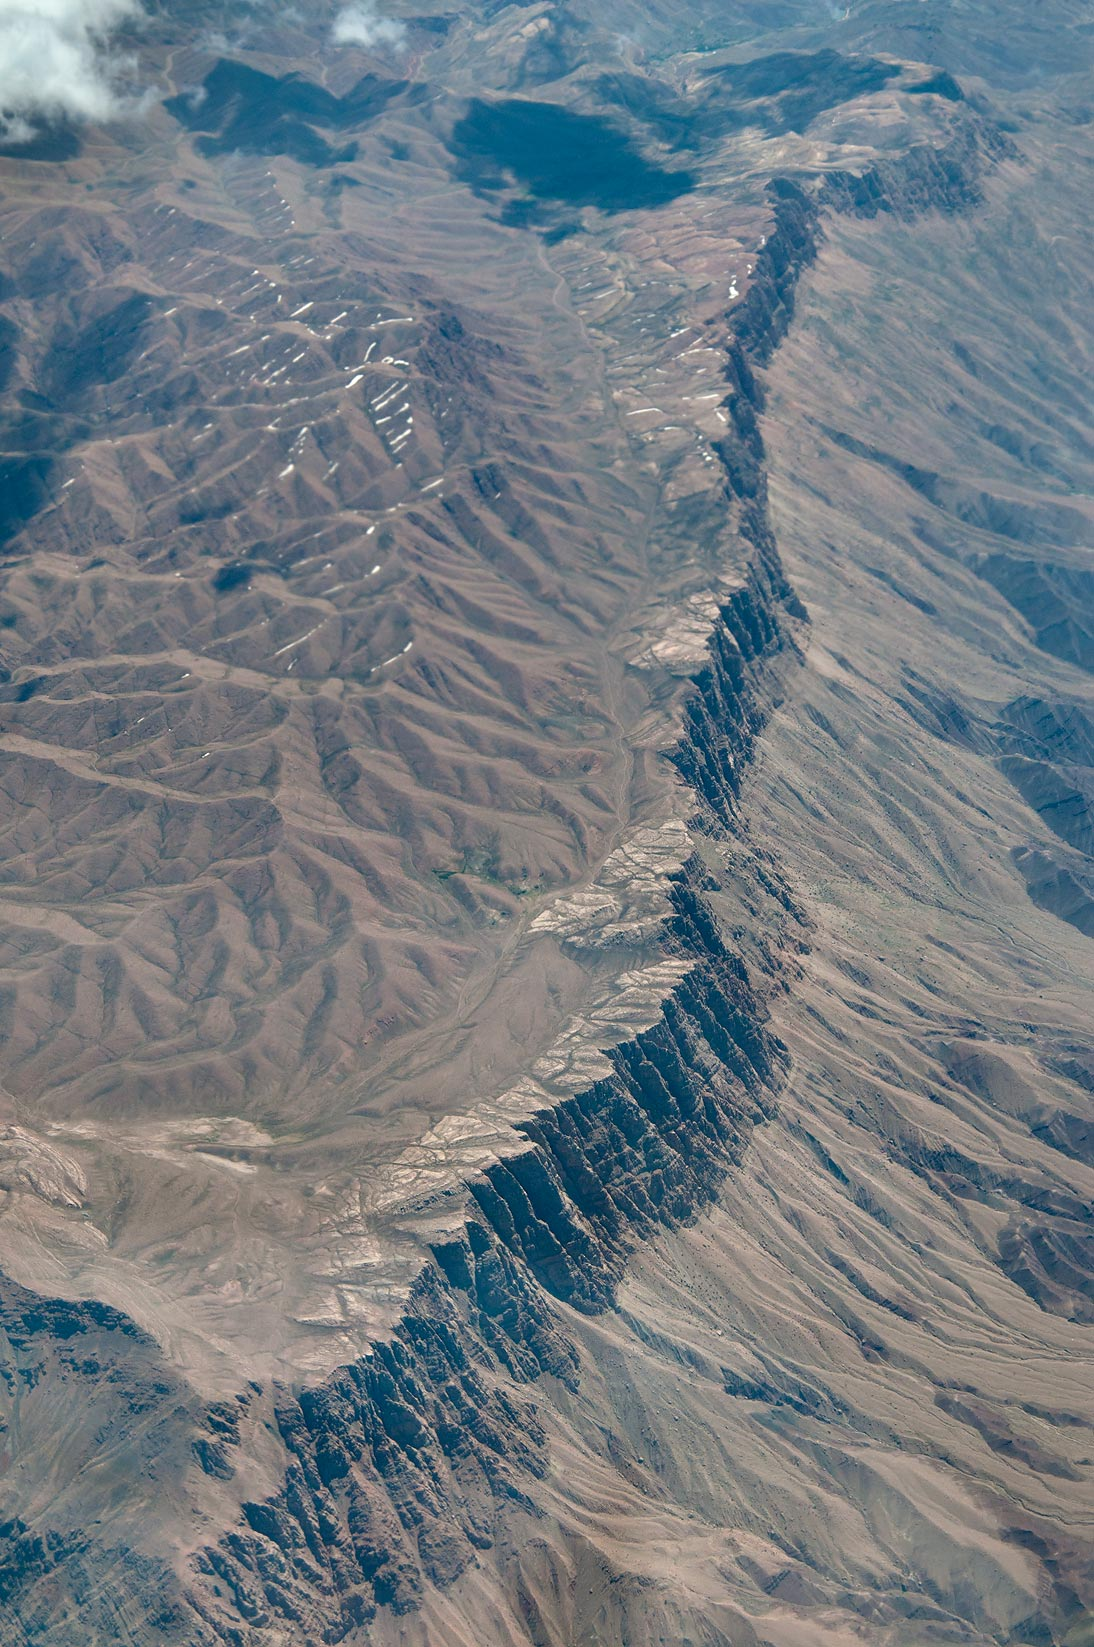 Mountain ridge in southern Iran, near Kerman...a plane from Dubai, UAE to Houston, TX